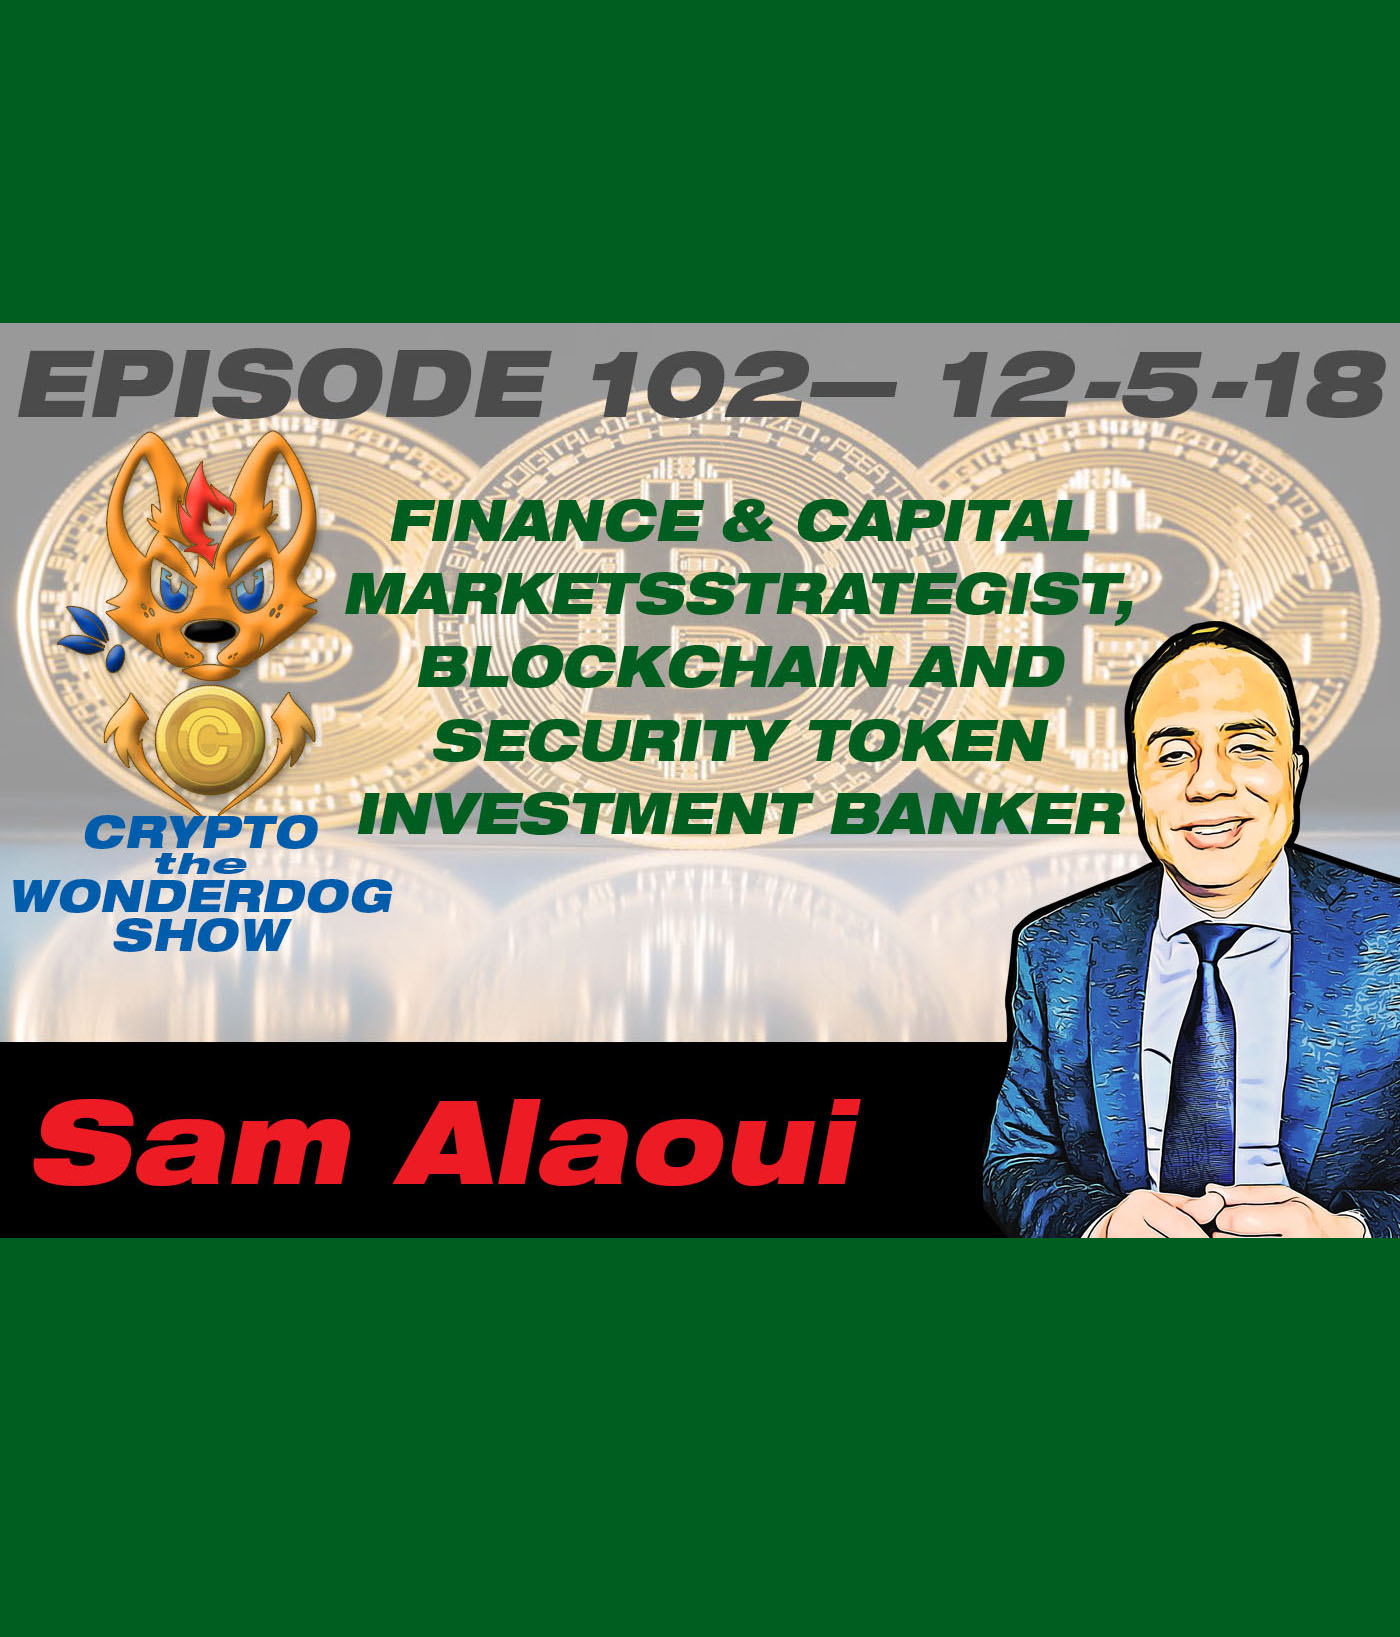 Finance & Capital Markets Strategist, a Blockchain and Security Token Investment Banker, Entrepreneur and Investor - Sam Alaoui